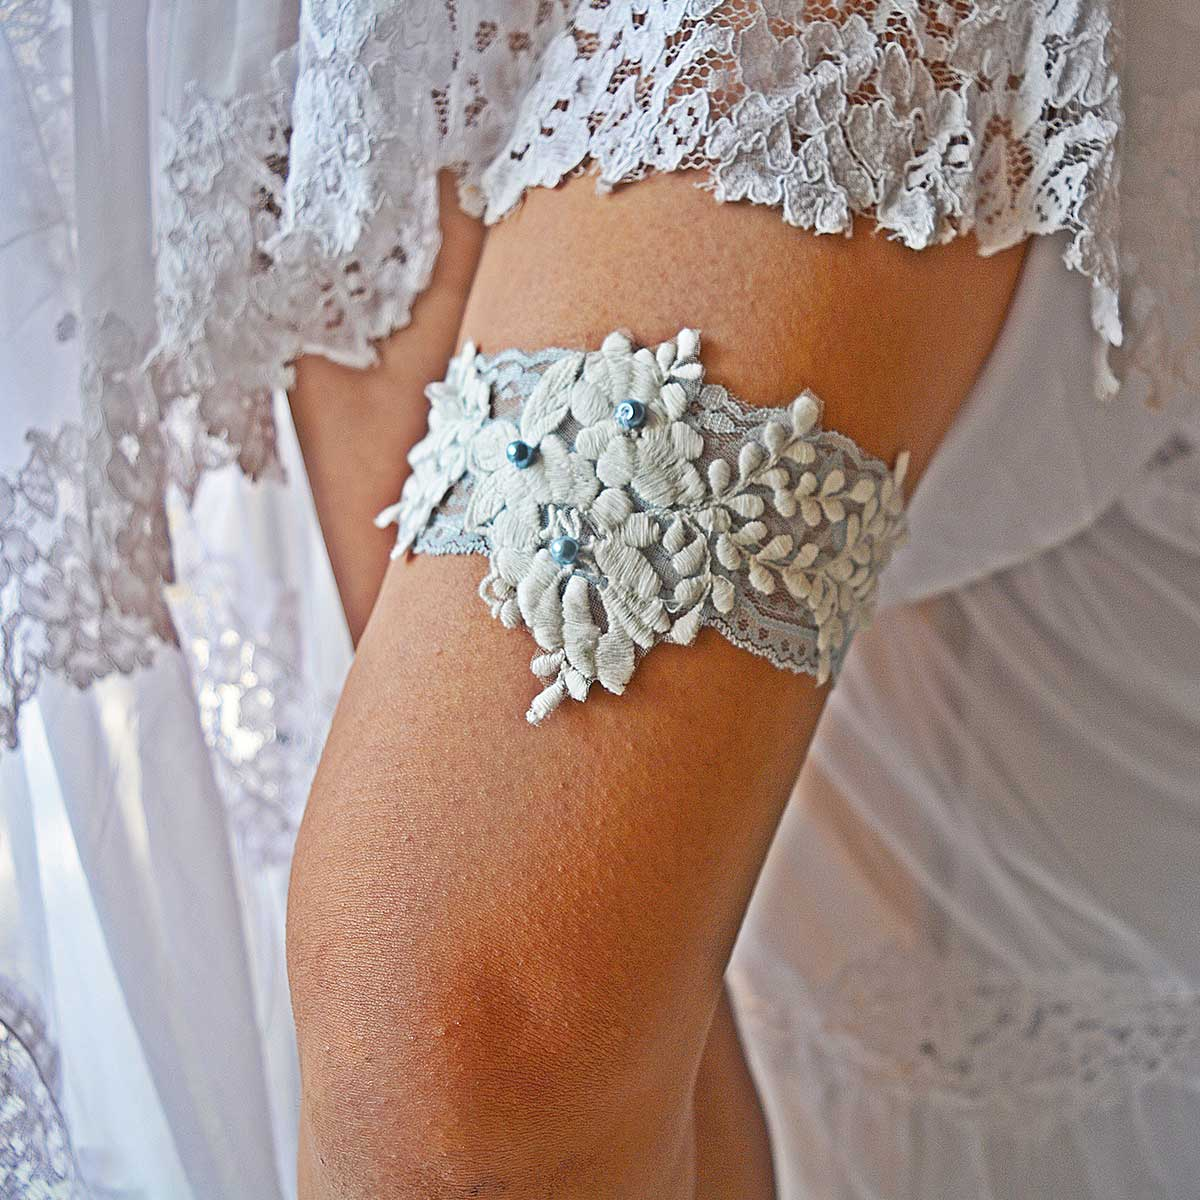 Bridal Garter With White Elastic And Pale Blue Applique Lace - Wedding Garter - SuzannaM Designs